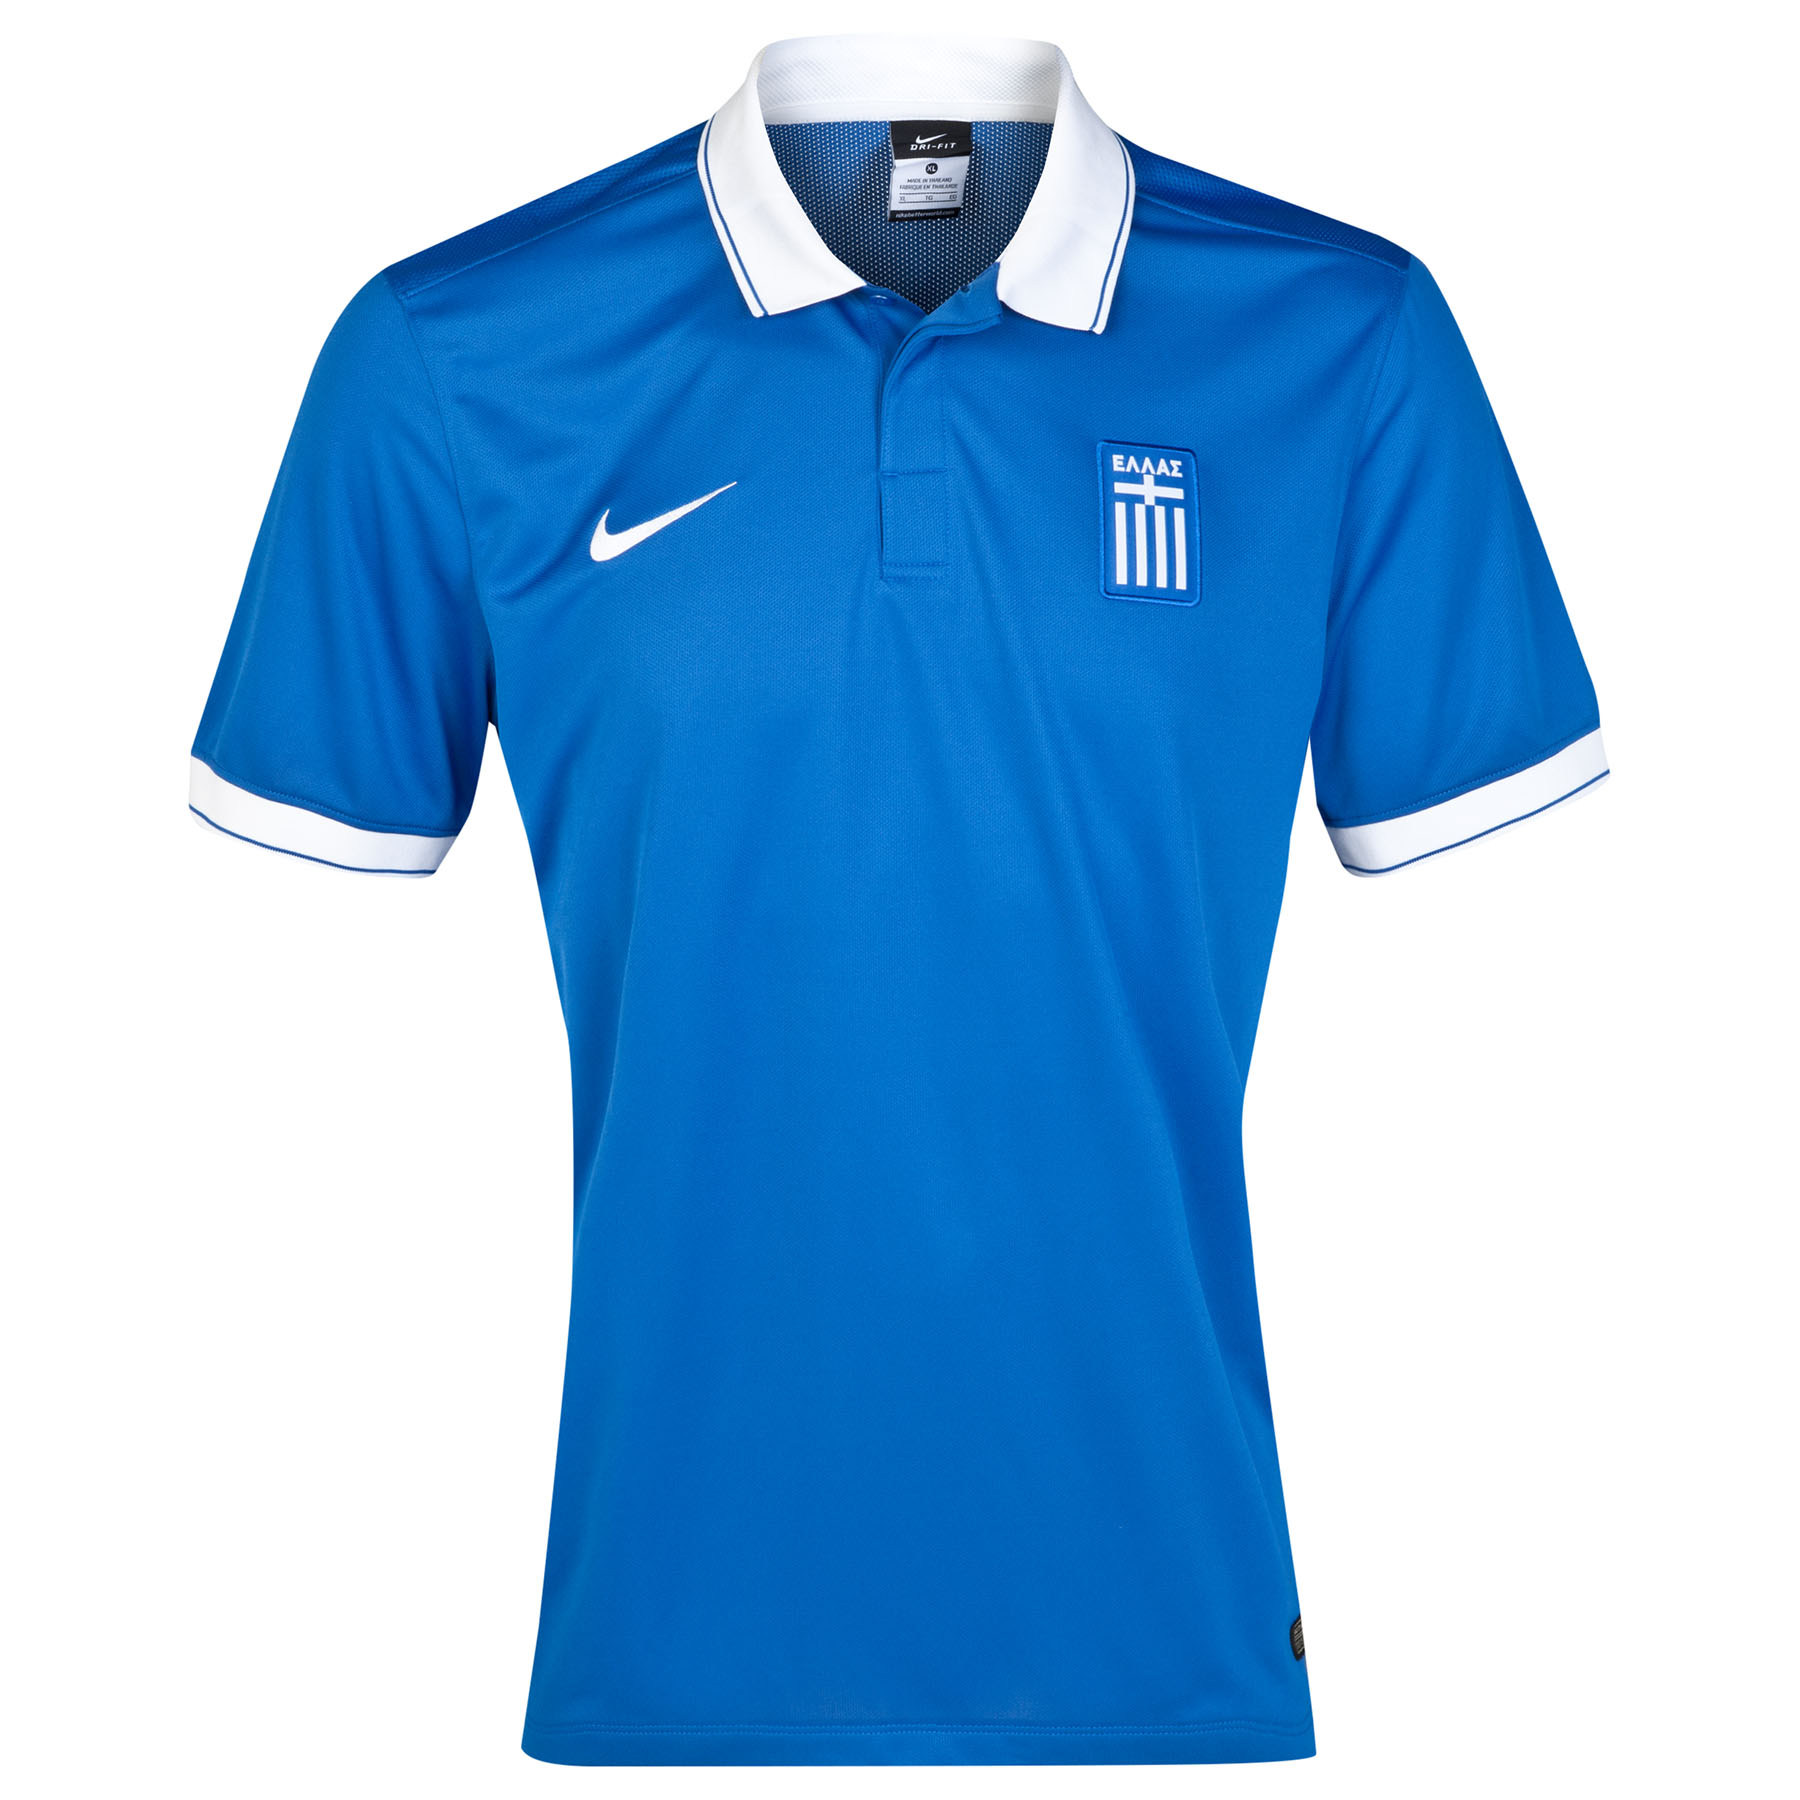 Greece Away Shirt 2014/15 Royal Blue